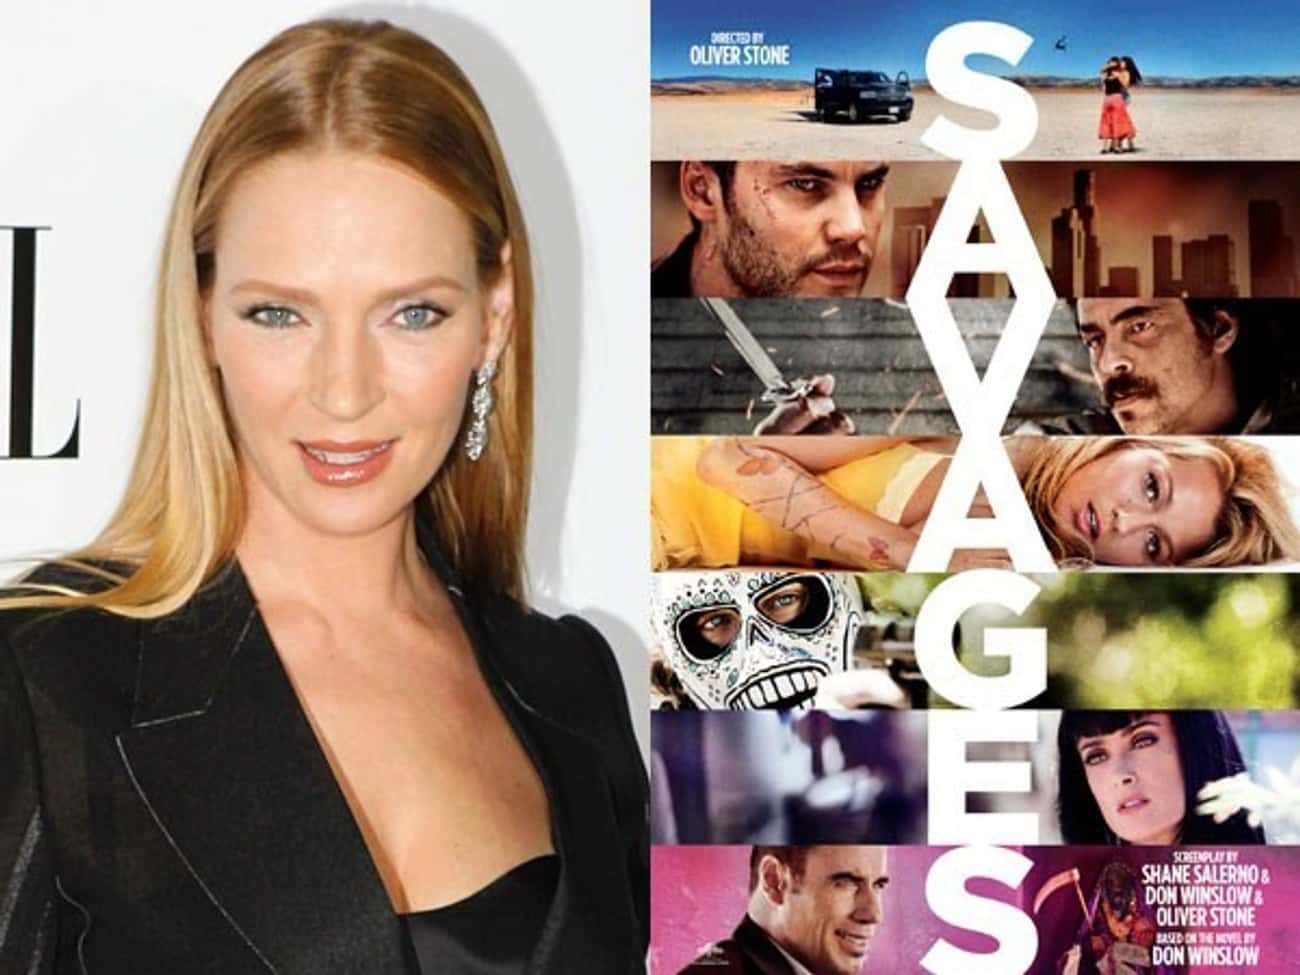 Uma Thurman - Savages is listed (or ranked) 3 on the list 22 Famous Actors Who Were Cut from Famous Movies